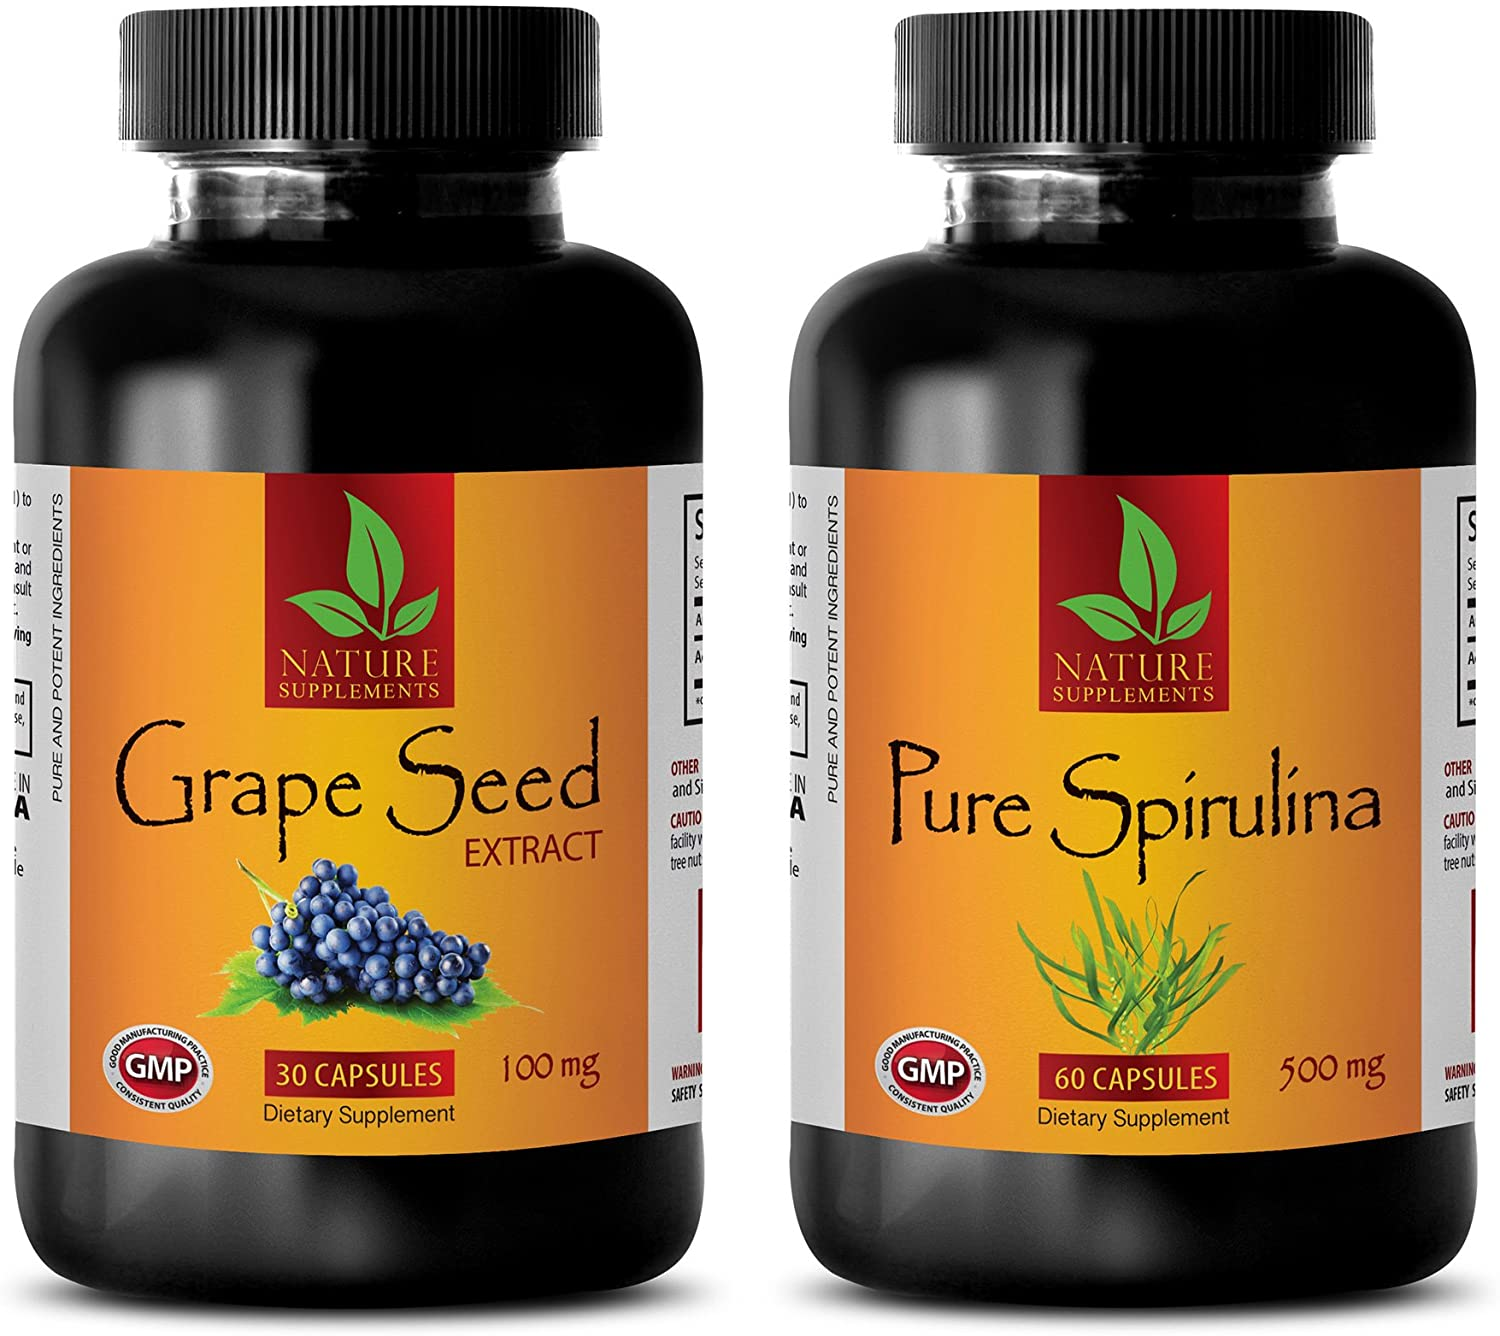 Blood Pressure Factors - Grape Seed Extract - SPIRULINA - Combo - Grape Seed Capsules - (2 Bottles Combo)